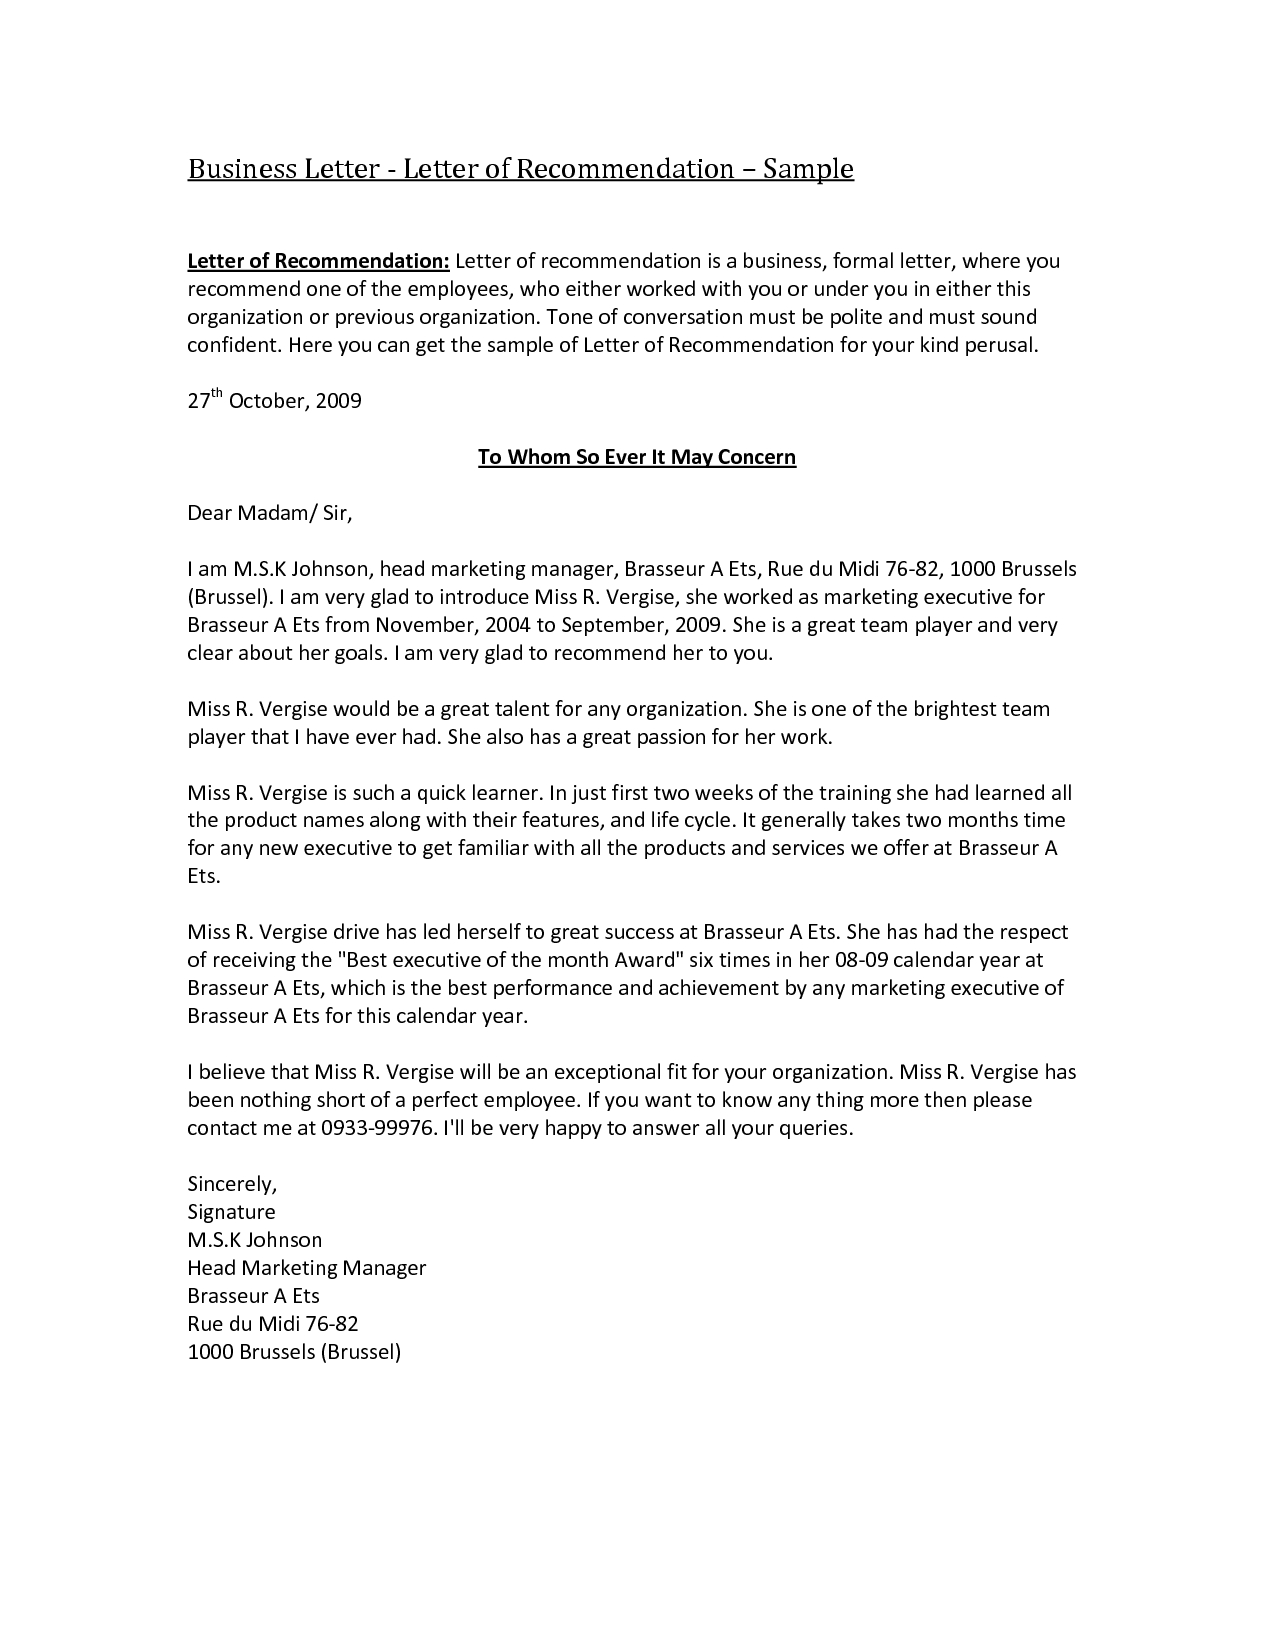 company business reference letter template Collection-business re mendation letter template 17-h